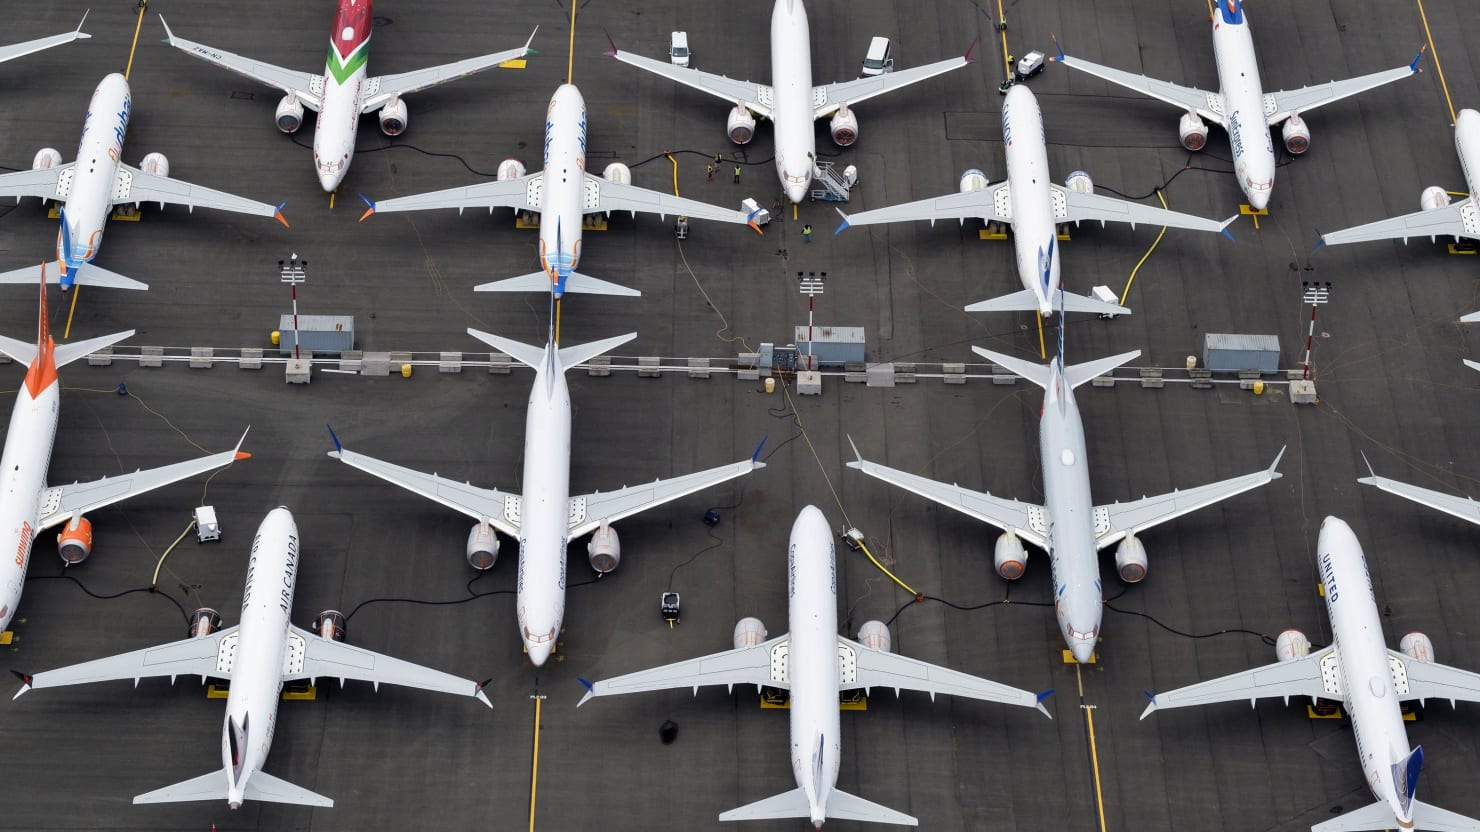 Boeing Is Totally Screwed as Orders Plunge and Customers Switch to Airbus